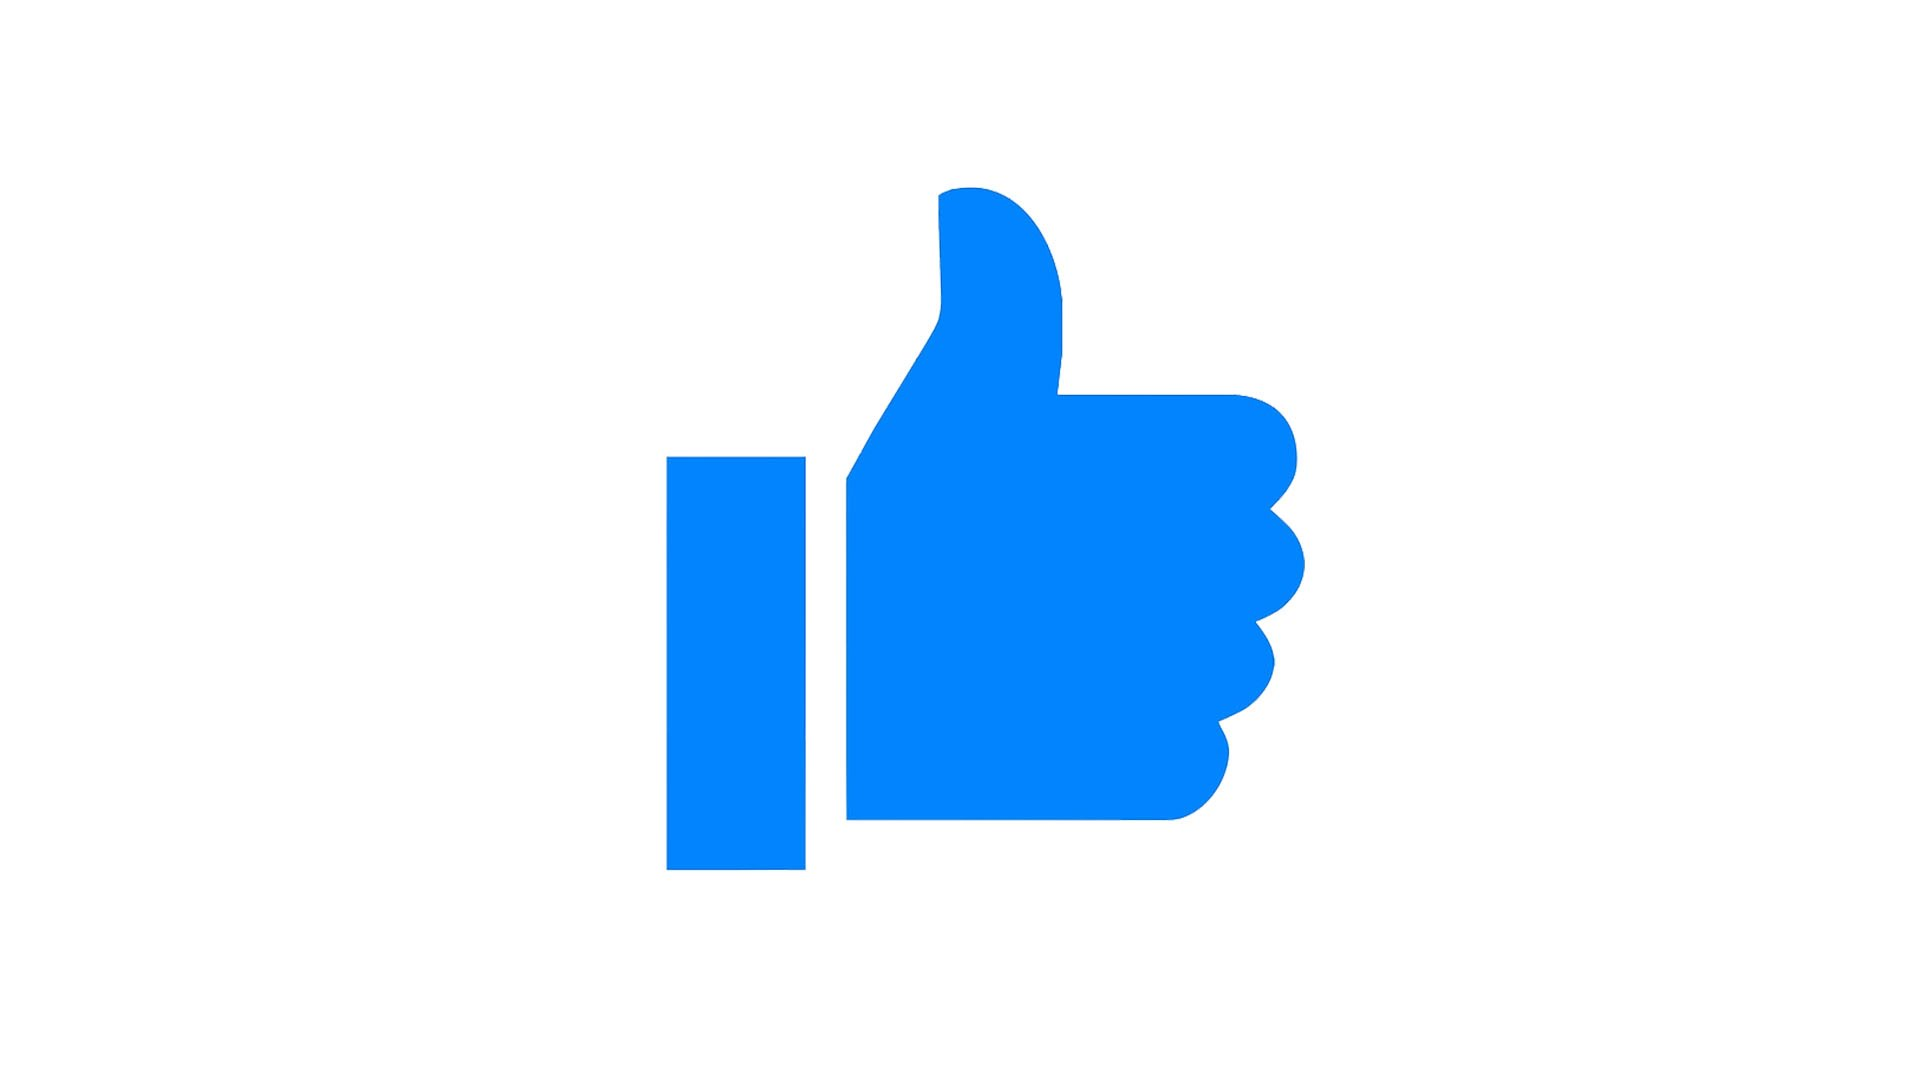 Facebook Messenger Thumb Up Animation: Leave a like for Youtube Channel -  FREE Download - YouTube - Two Thumbs Up PNG HD